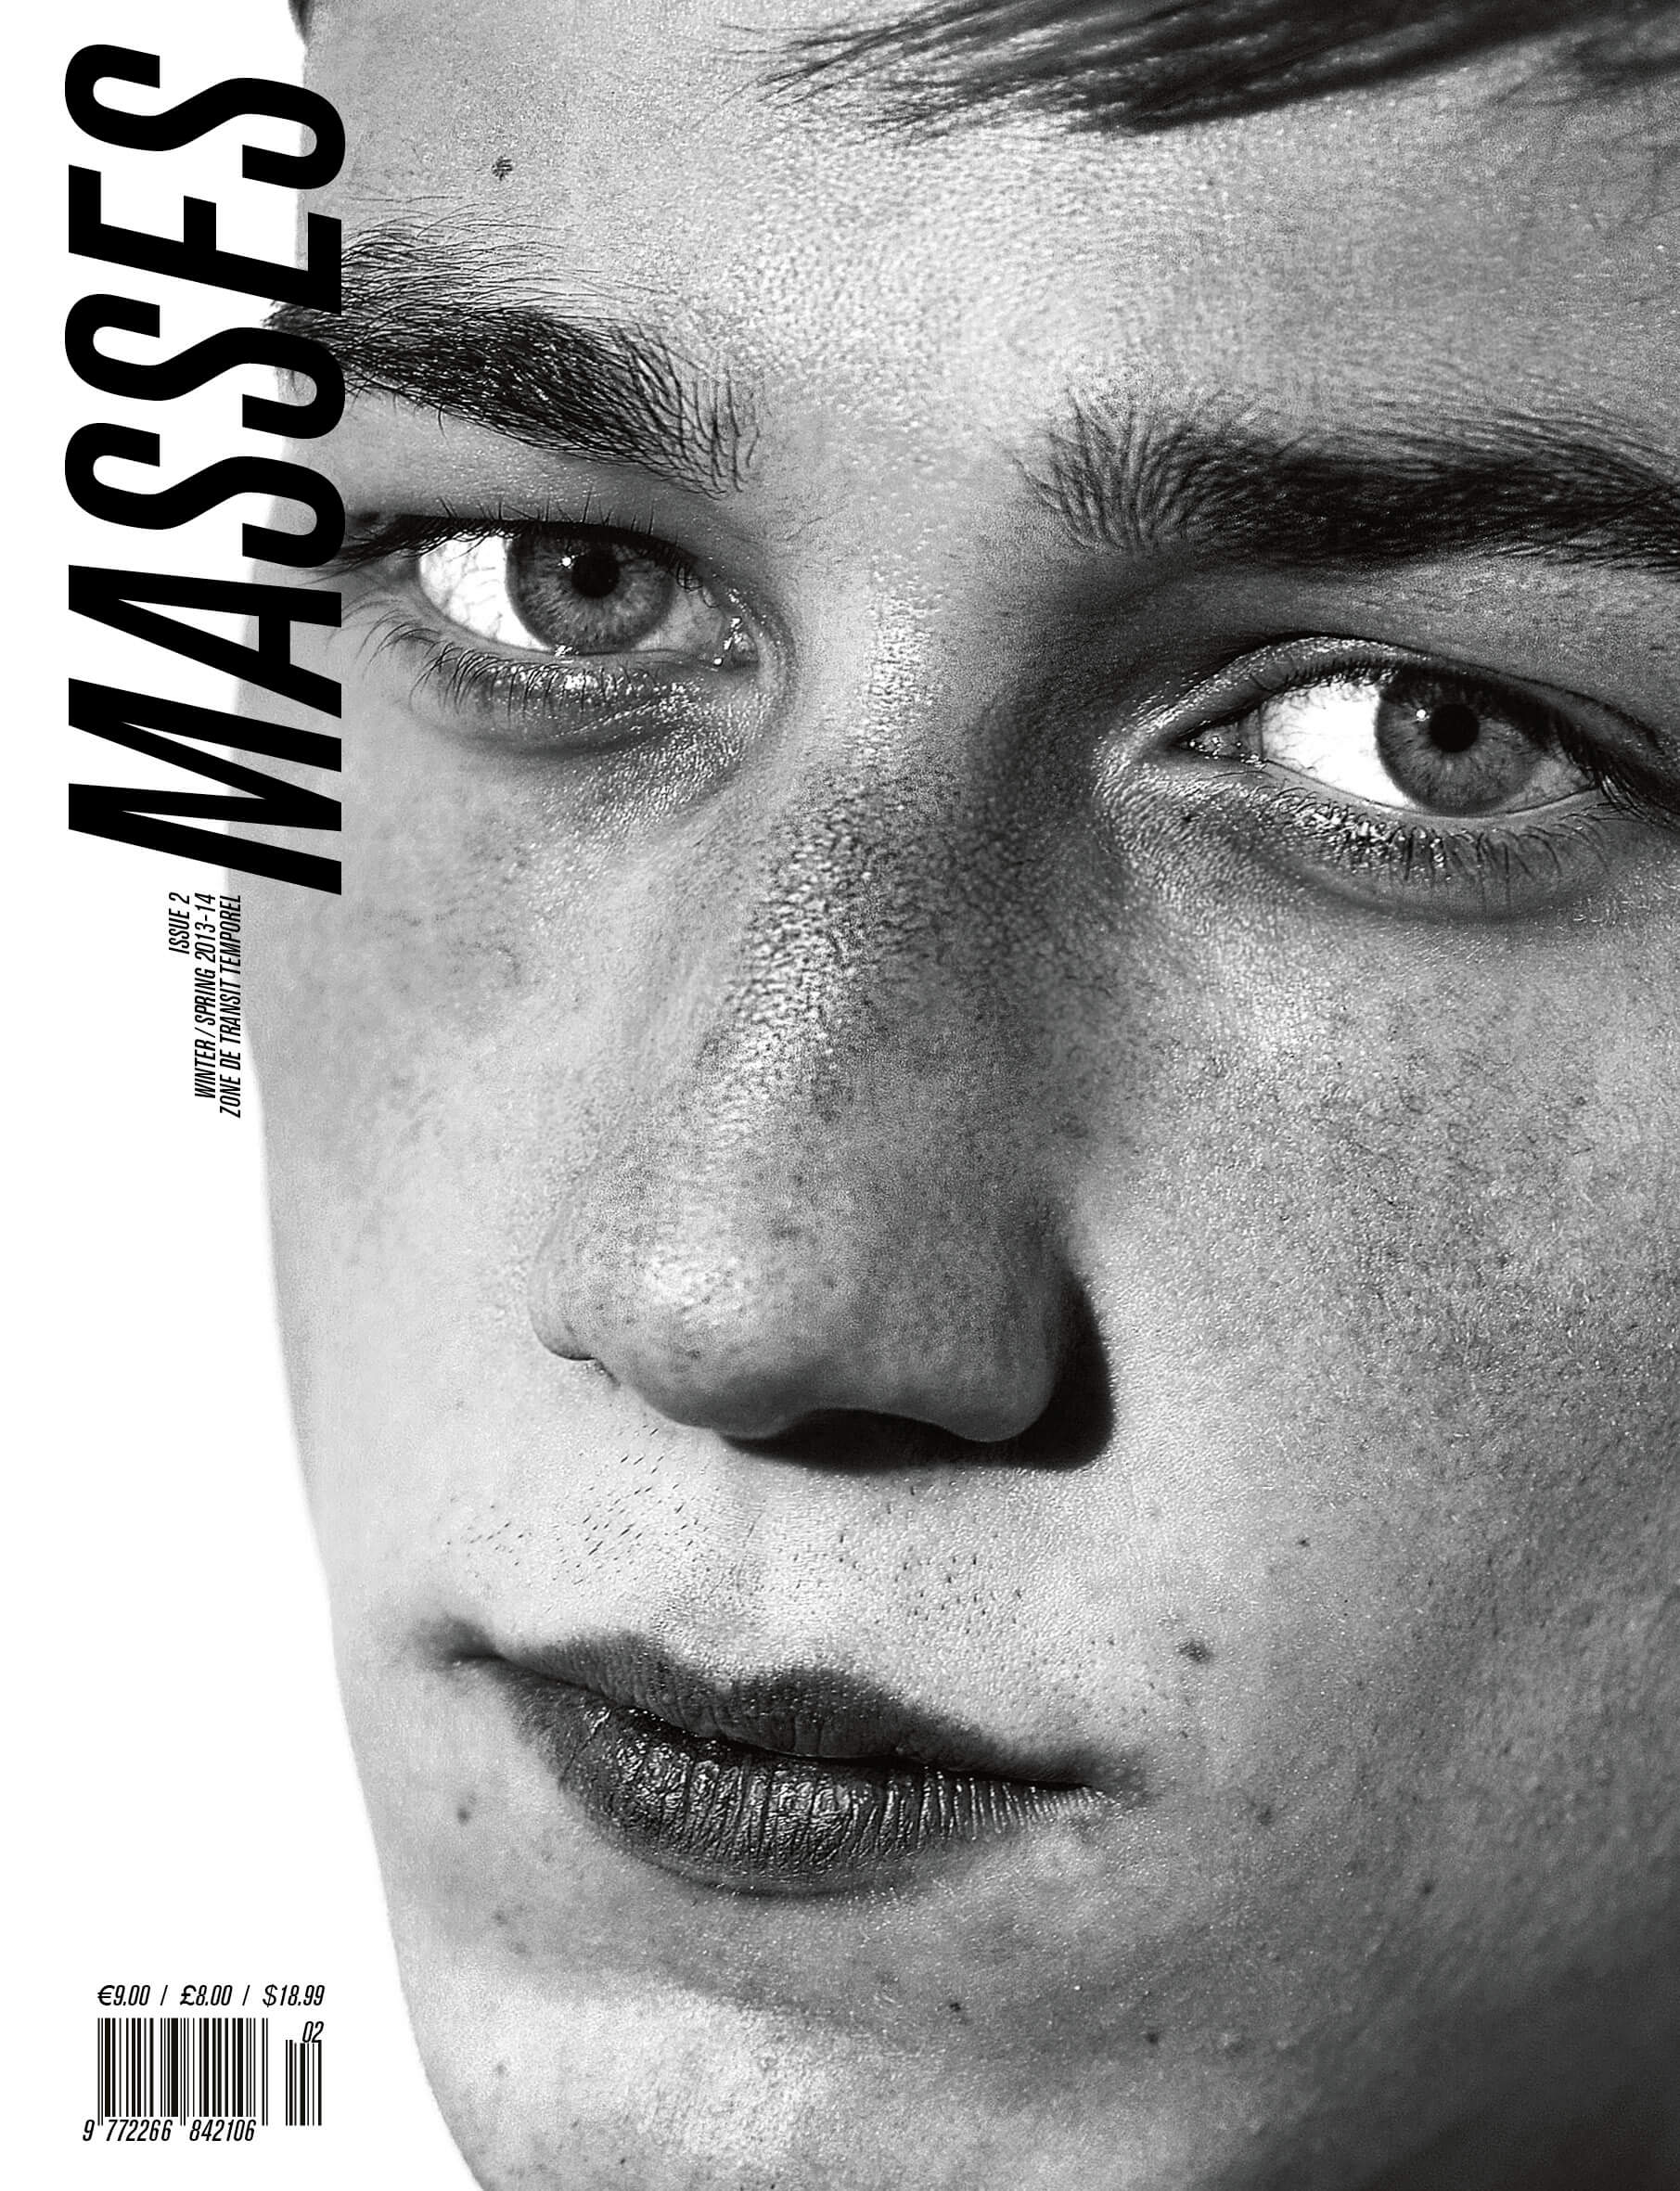 MASSES Magazine Issue No. 2 – Cover photographed by Kira Bunse and Eric Diulein & Sacha Quintin with Harvey James